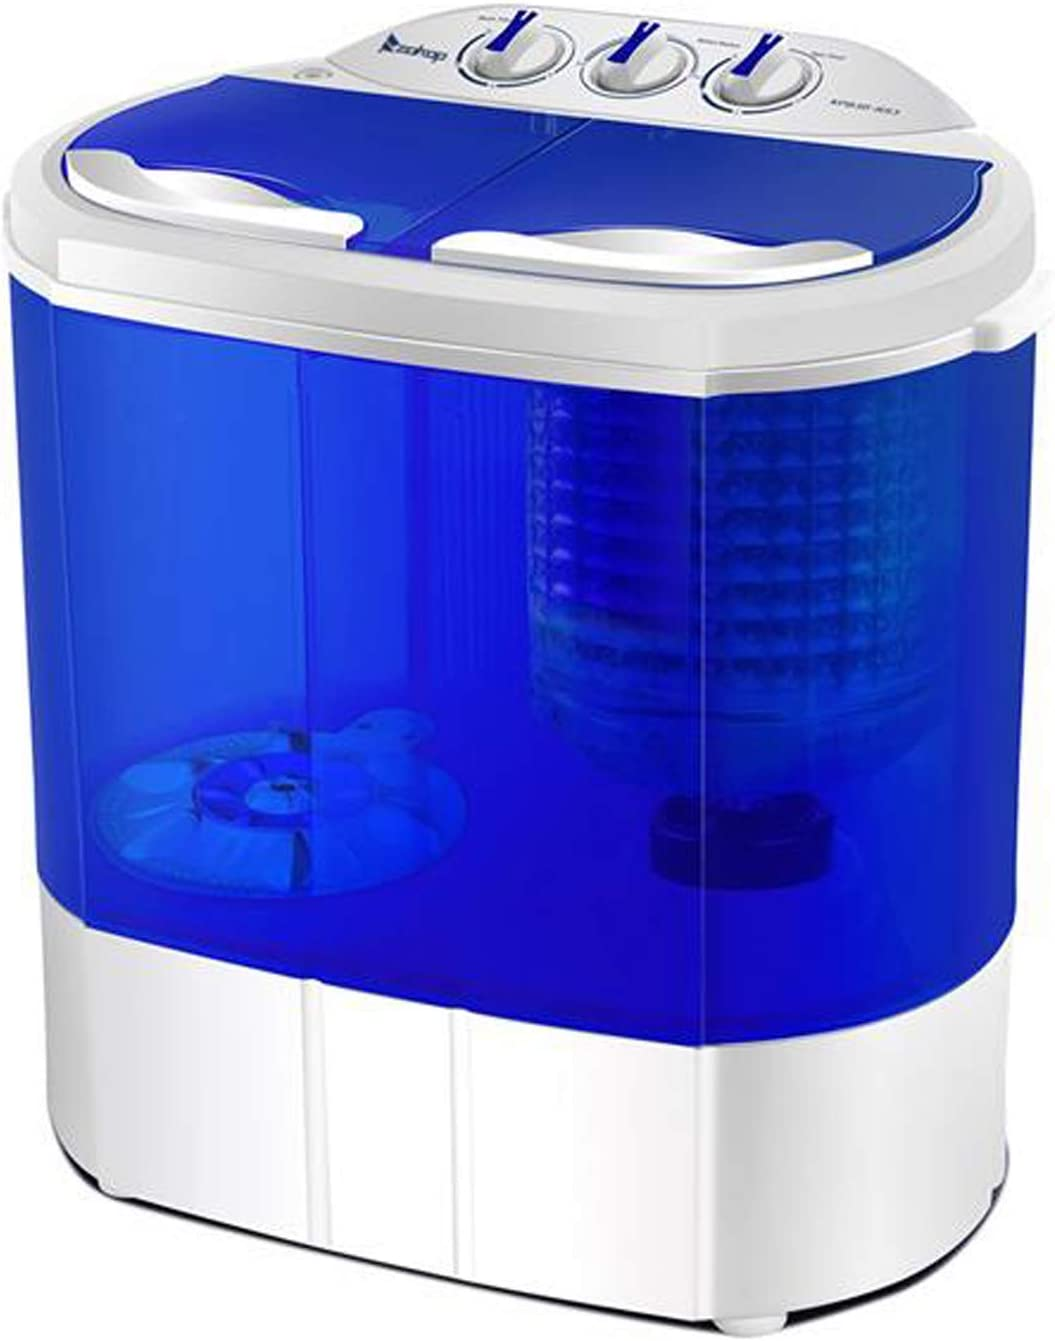 Portable Washer Compact Twin Tub 10.4 Lbs Mini Top Load Washing Machine Washer/Spinner(White & Blue)